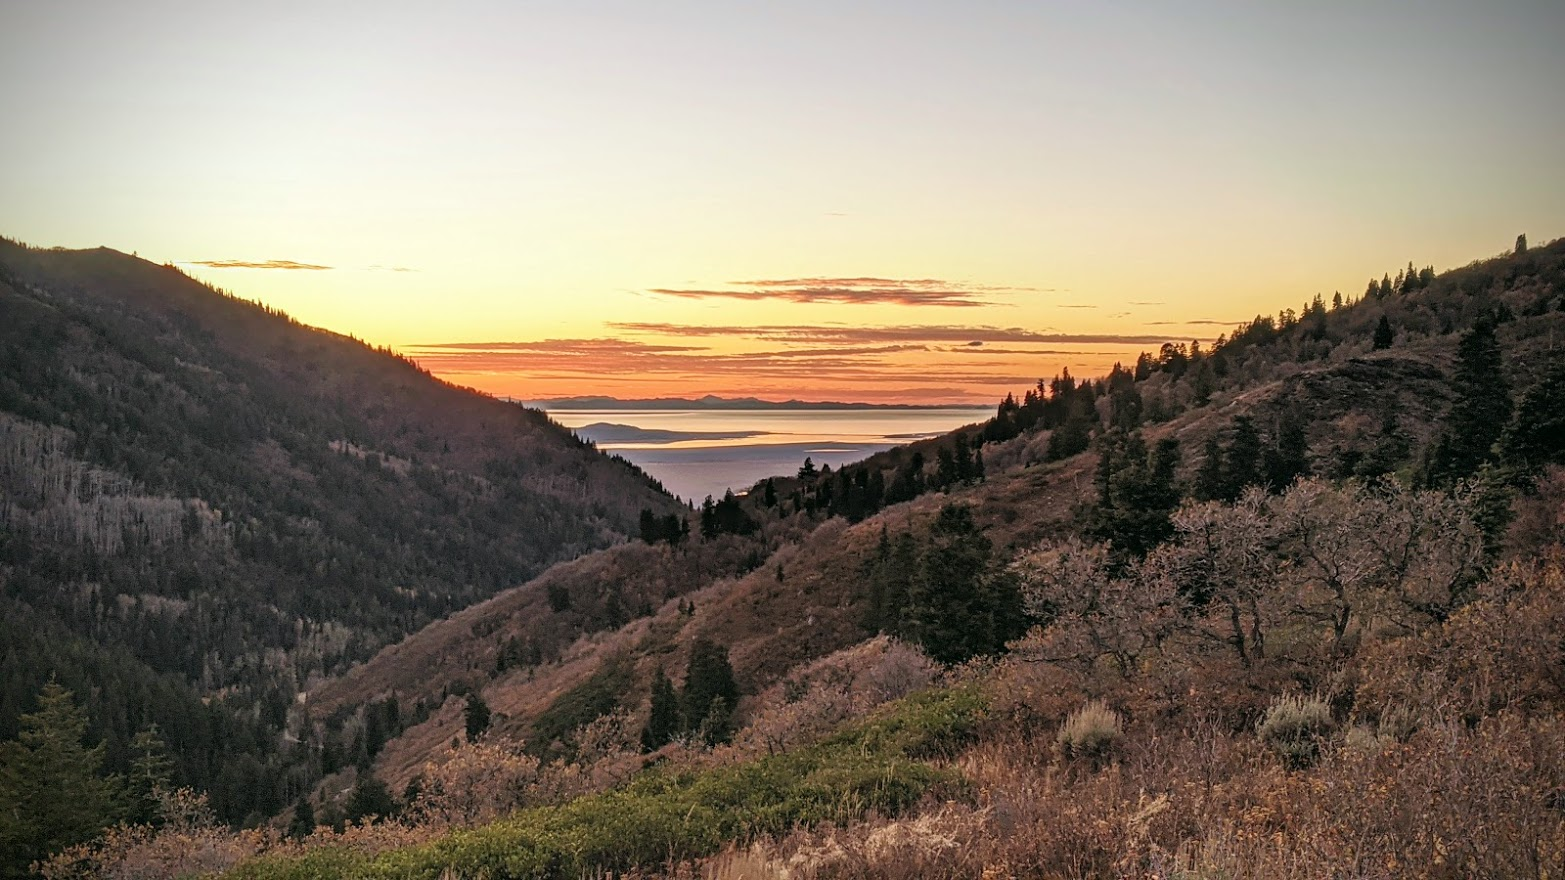 Click image for larger version  Name:Sunset over the lake.jpg Views:24 Size:336.0 KB ID:145023